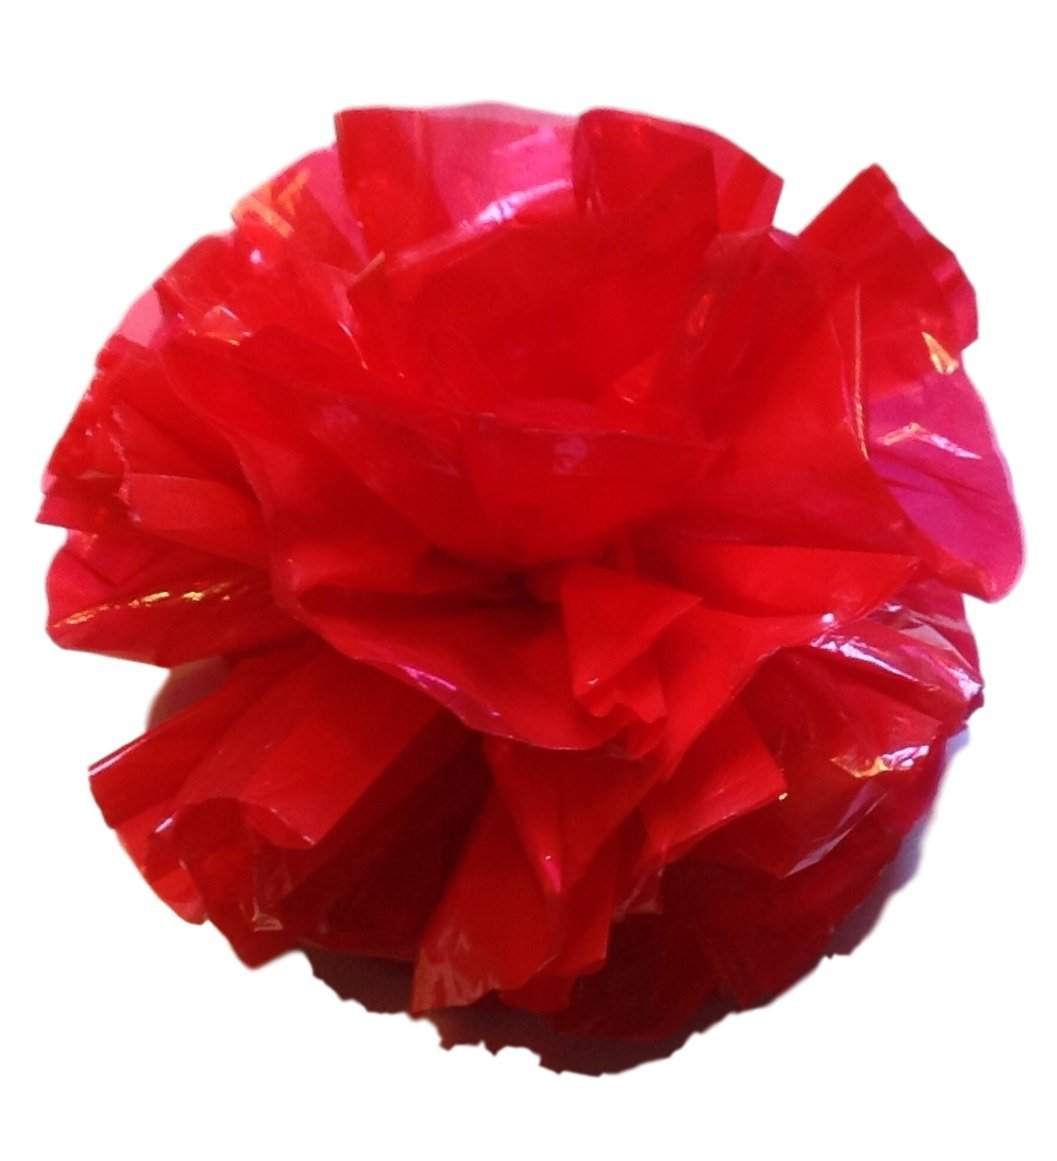 12 Plastic Flower Poms with Suction Cups Car/Limo Decoration Deco-Puffs - red